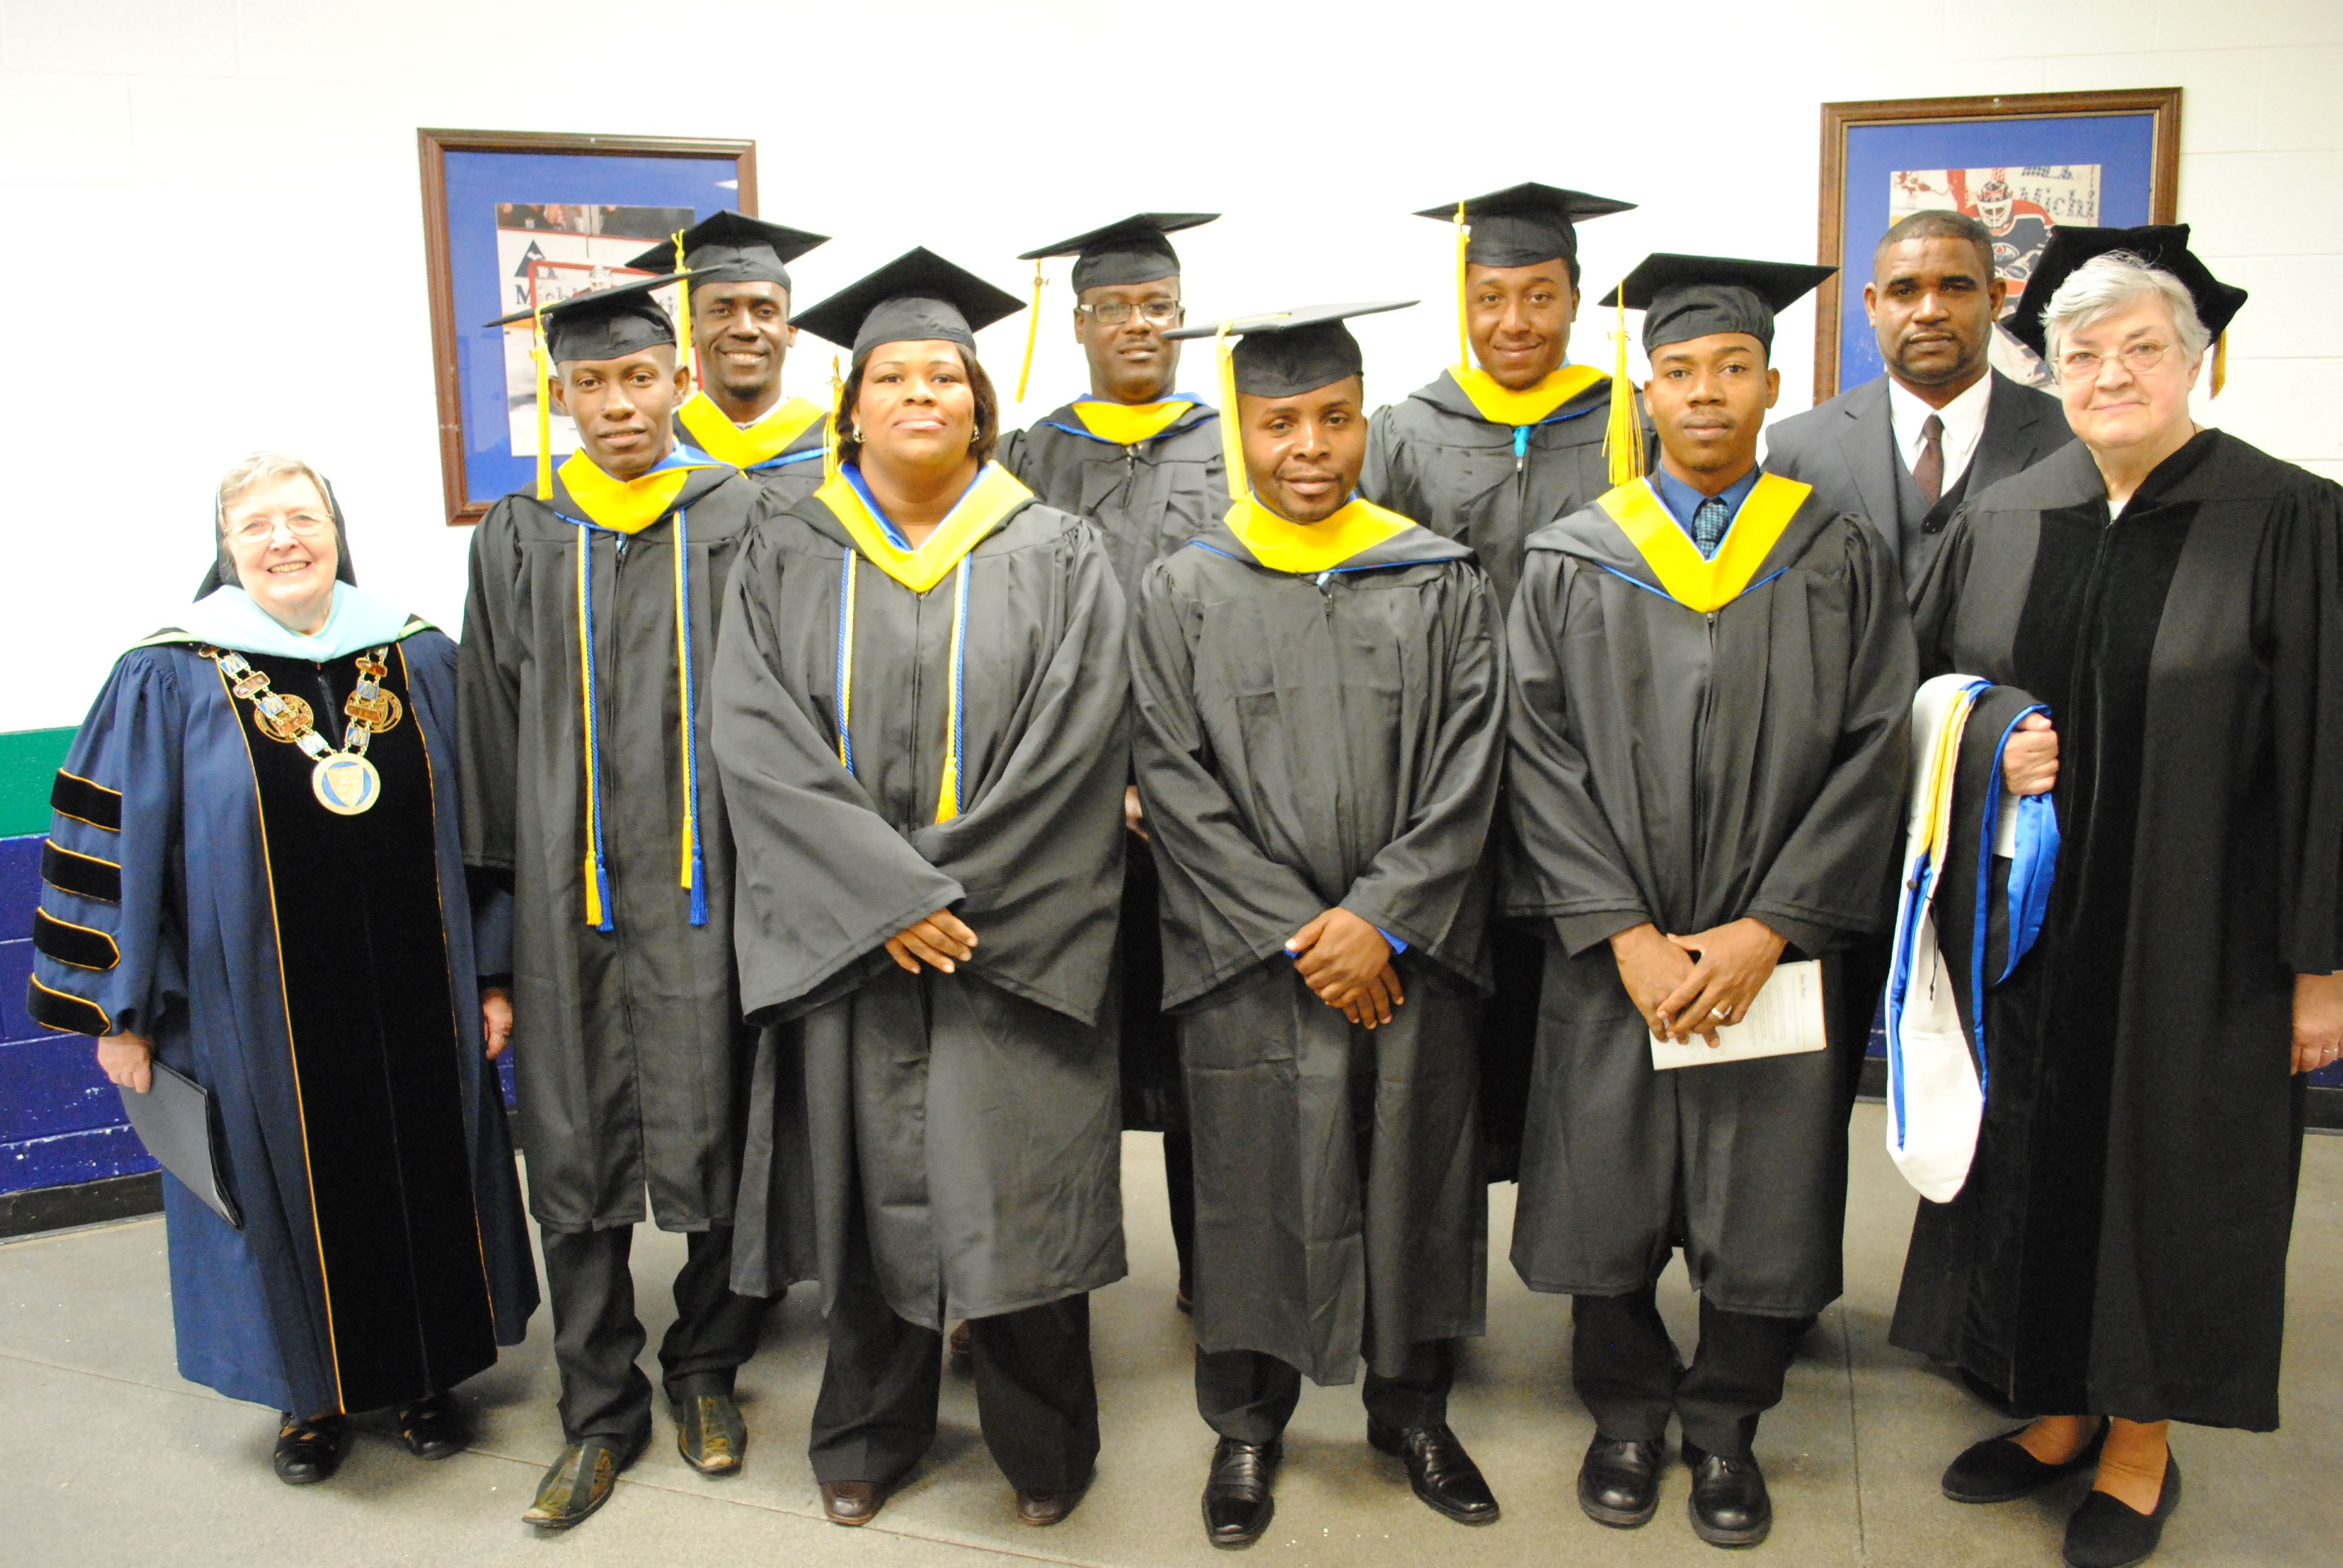 Haitian Students Earning Bachelor's Degrees Through Remote Learning Program